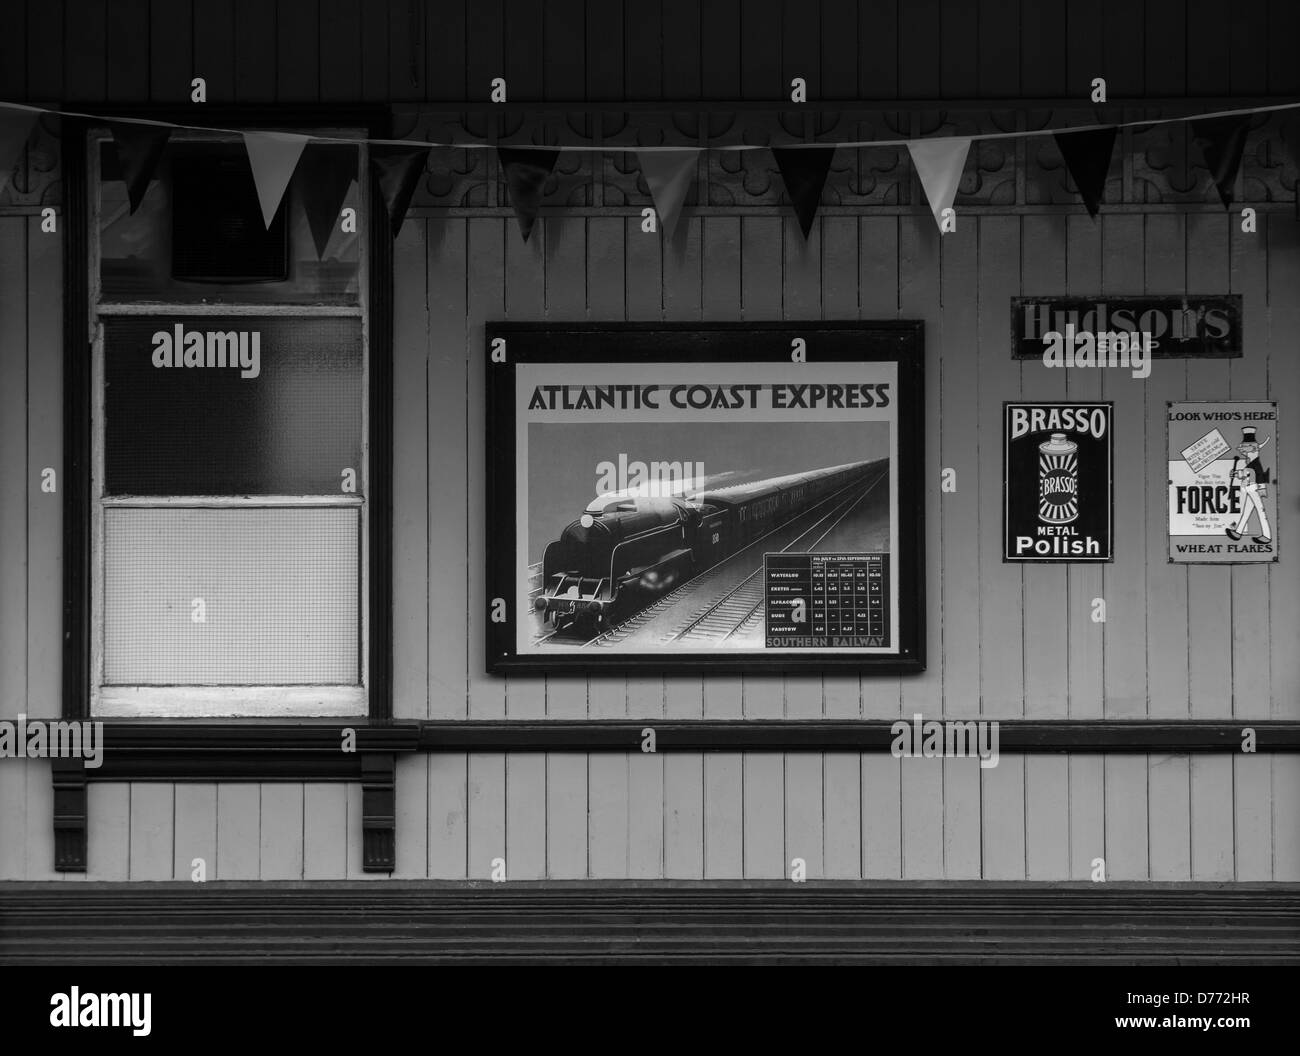 A monochrome scene of a station building on the Bluebell Railway showing adverts including the Atlantic Coast Express. - Stock Image